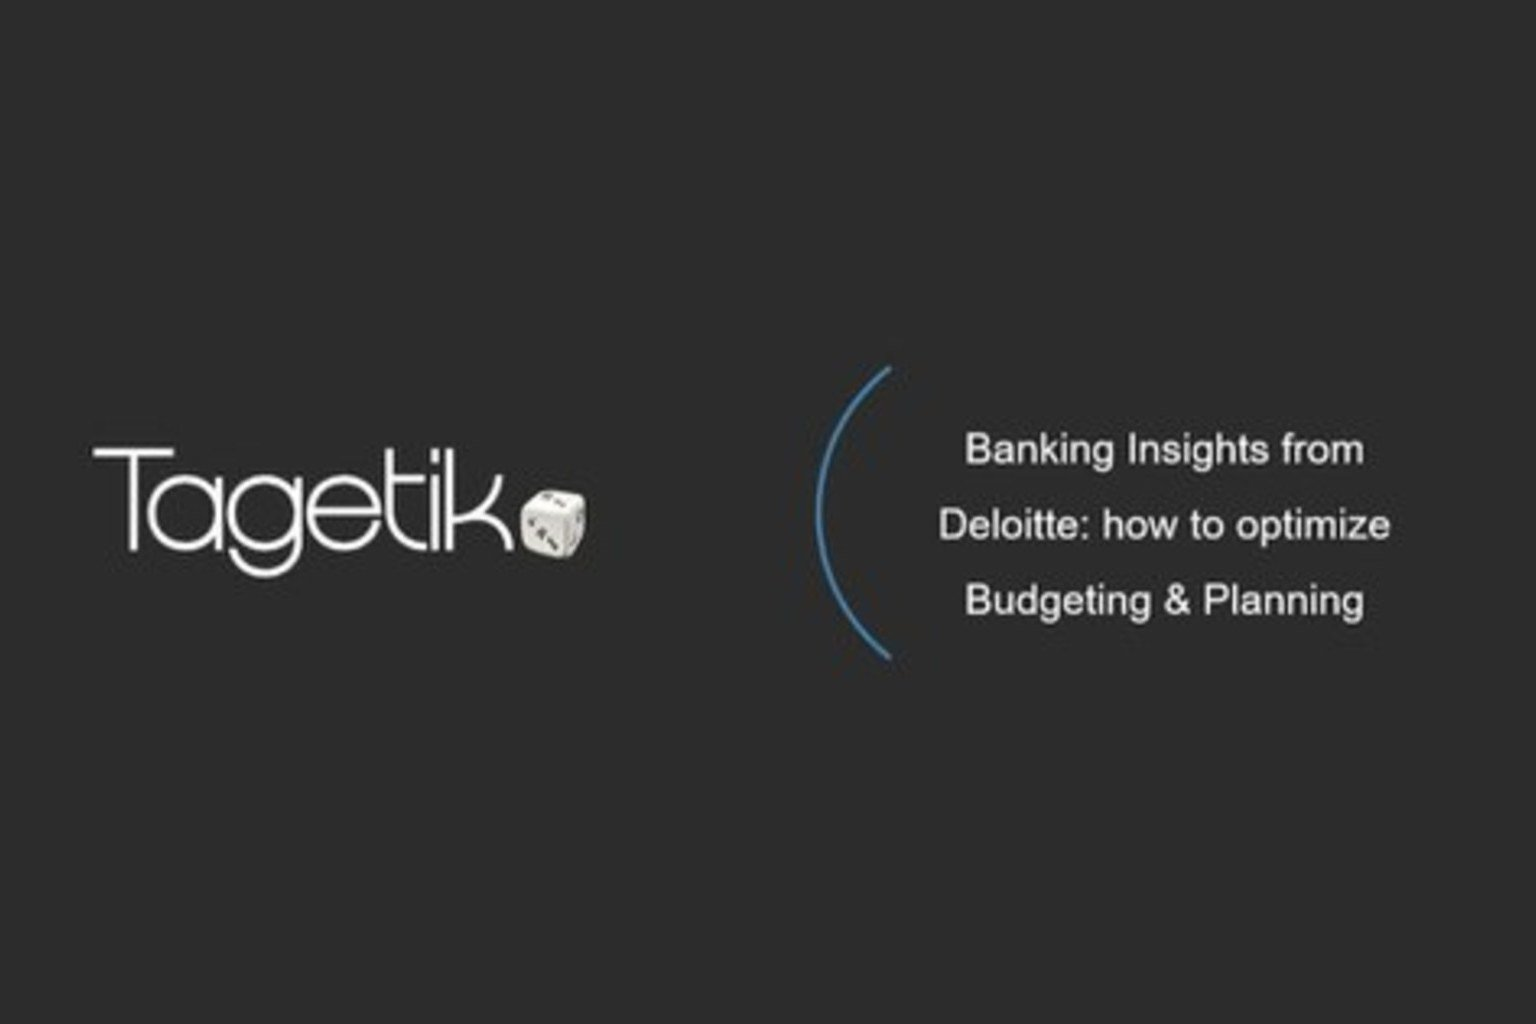 banking-insights-from-deloitte